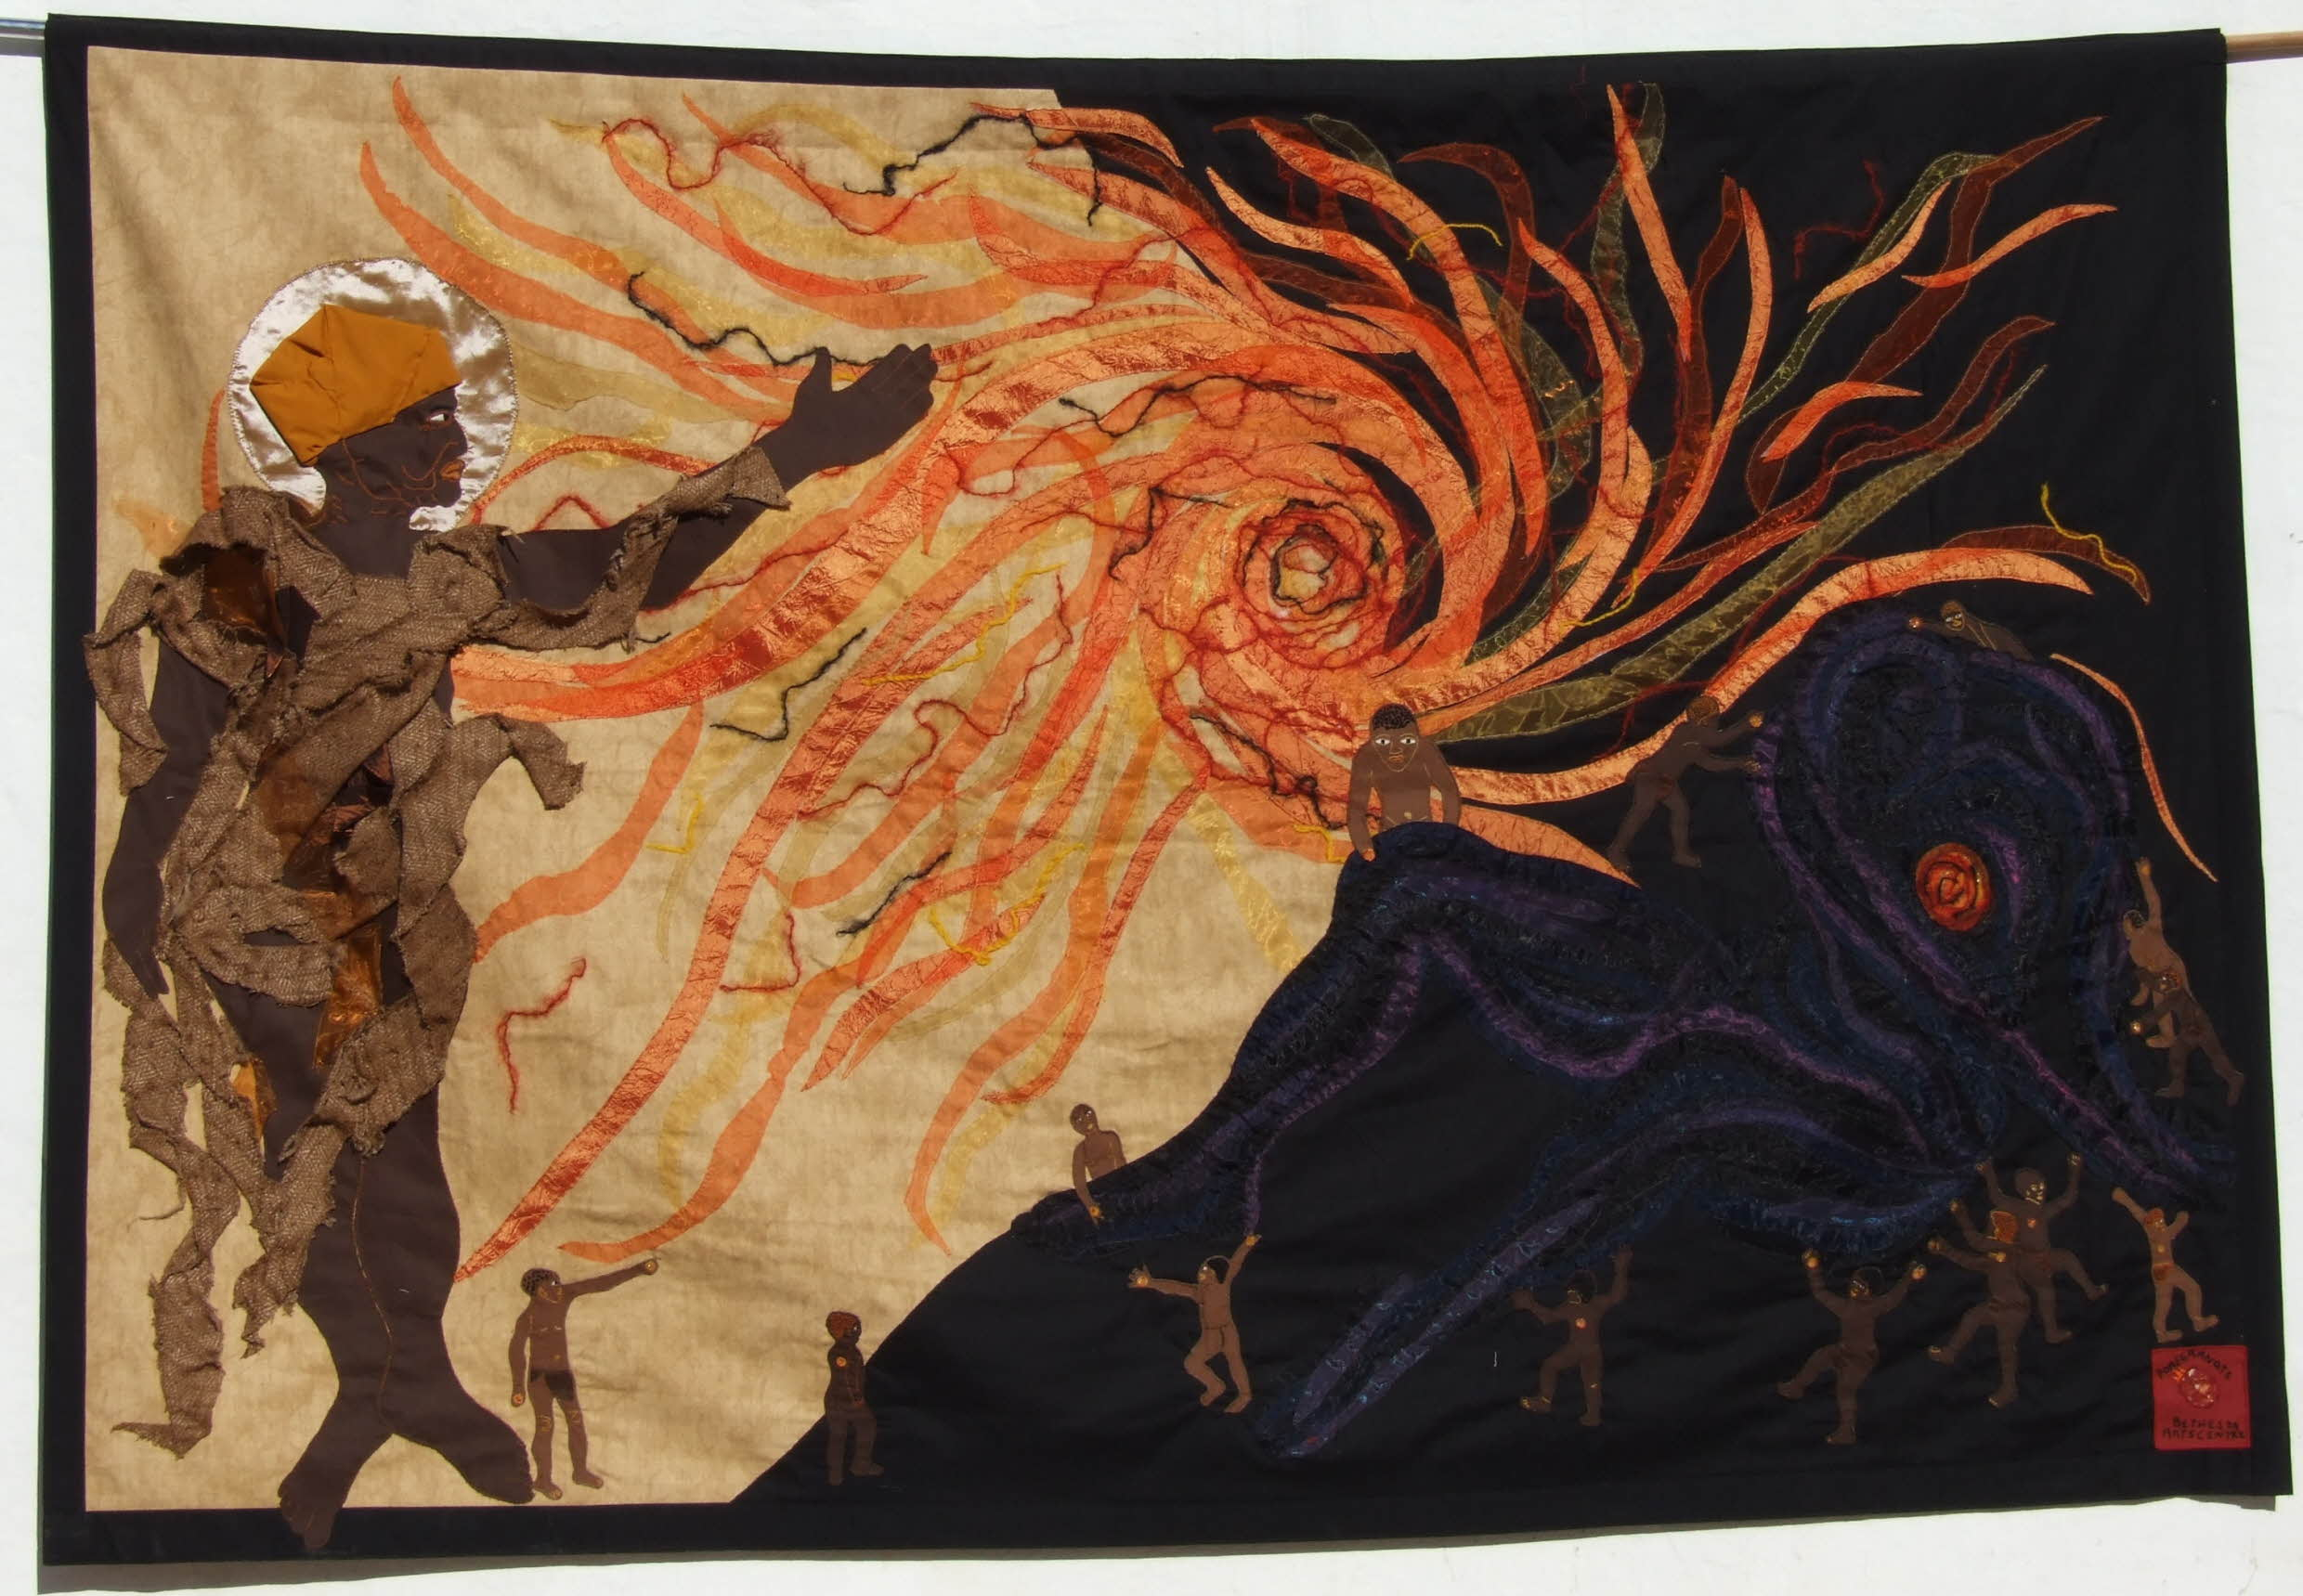 Jeni Couzyn (artistic director), Sandra Sweers (lead artist), The Creation of the Sun. A collaborative piece from Bethesda Arts Centre, textile, 2015. © The Bethesda Foundation Limited.